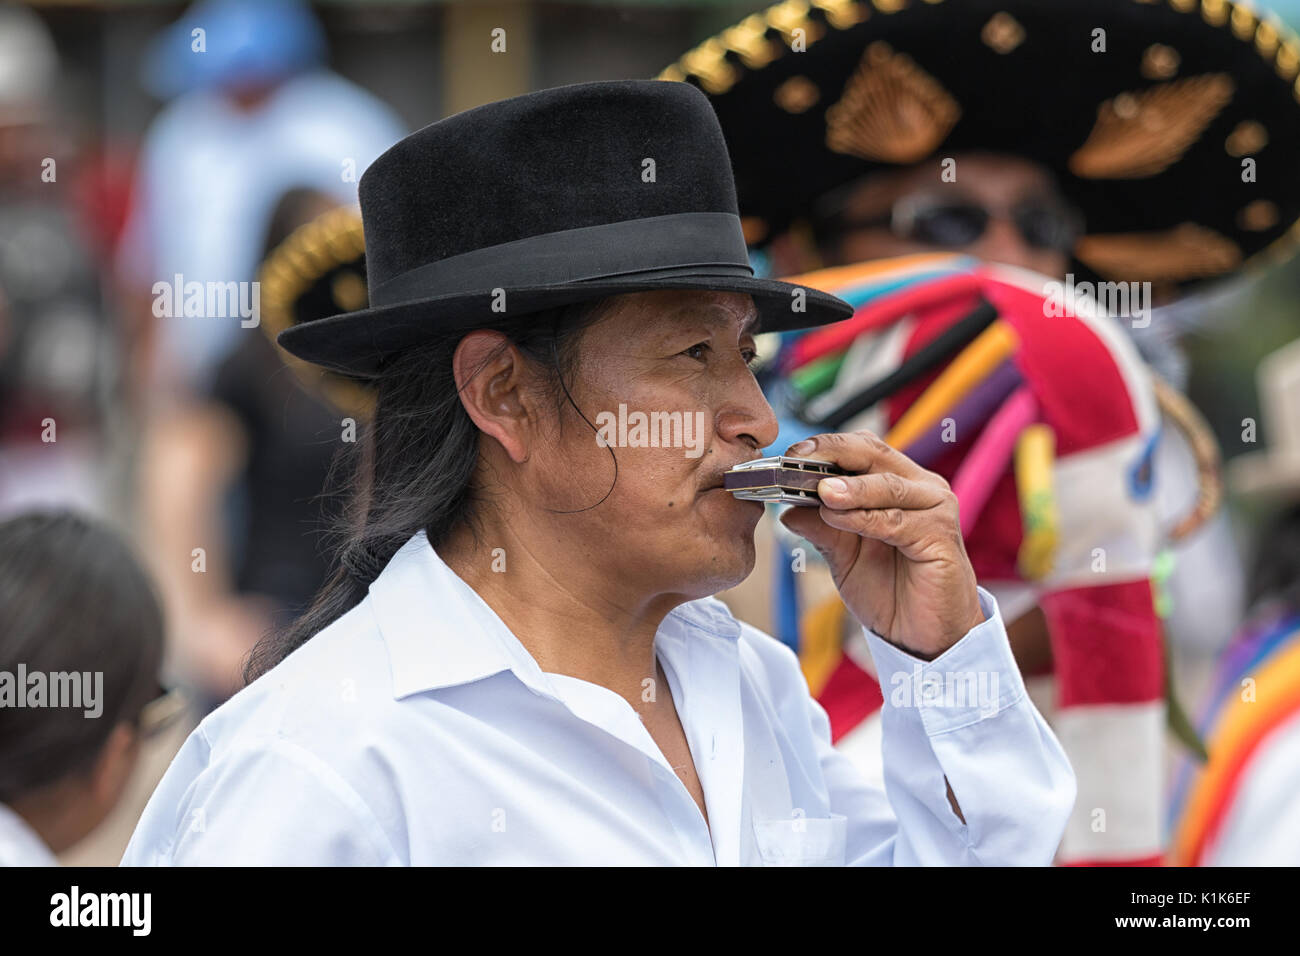 man playing the harmonica at Inti Raymi parade - Stock Image